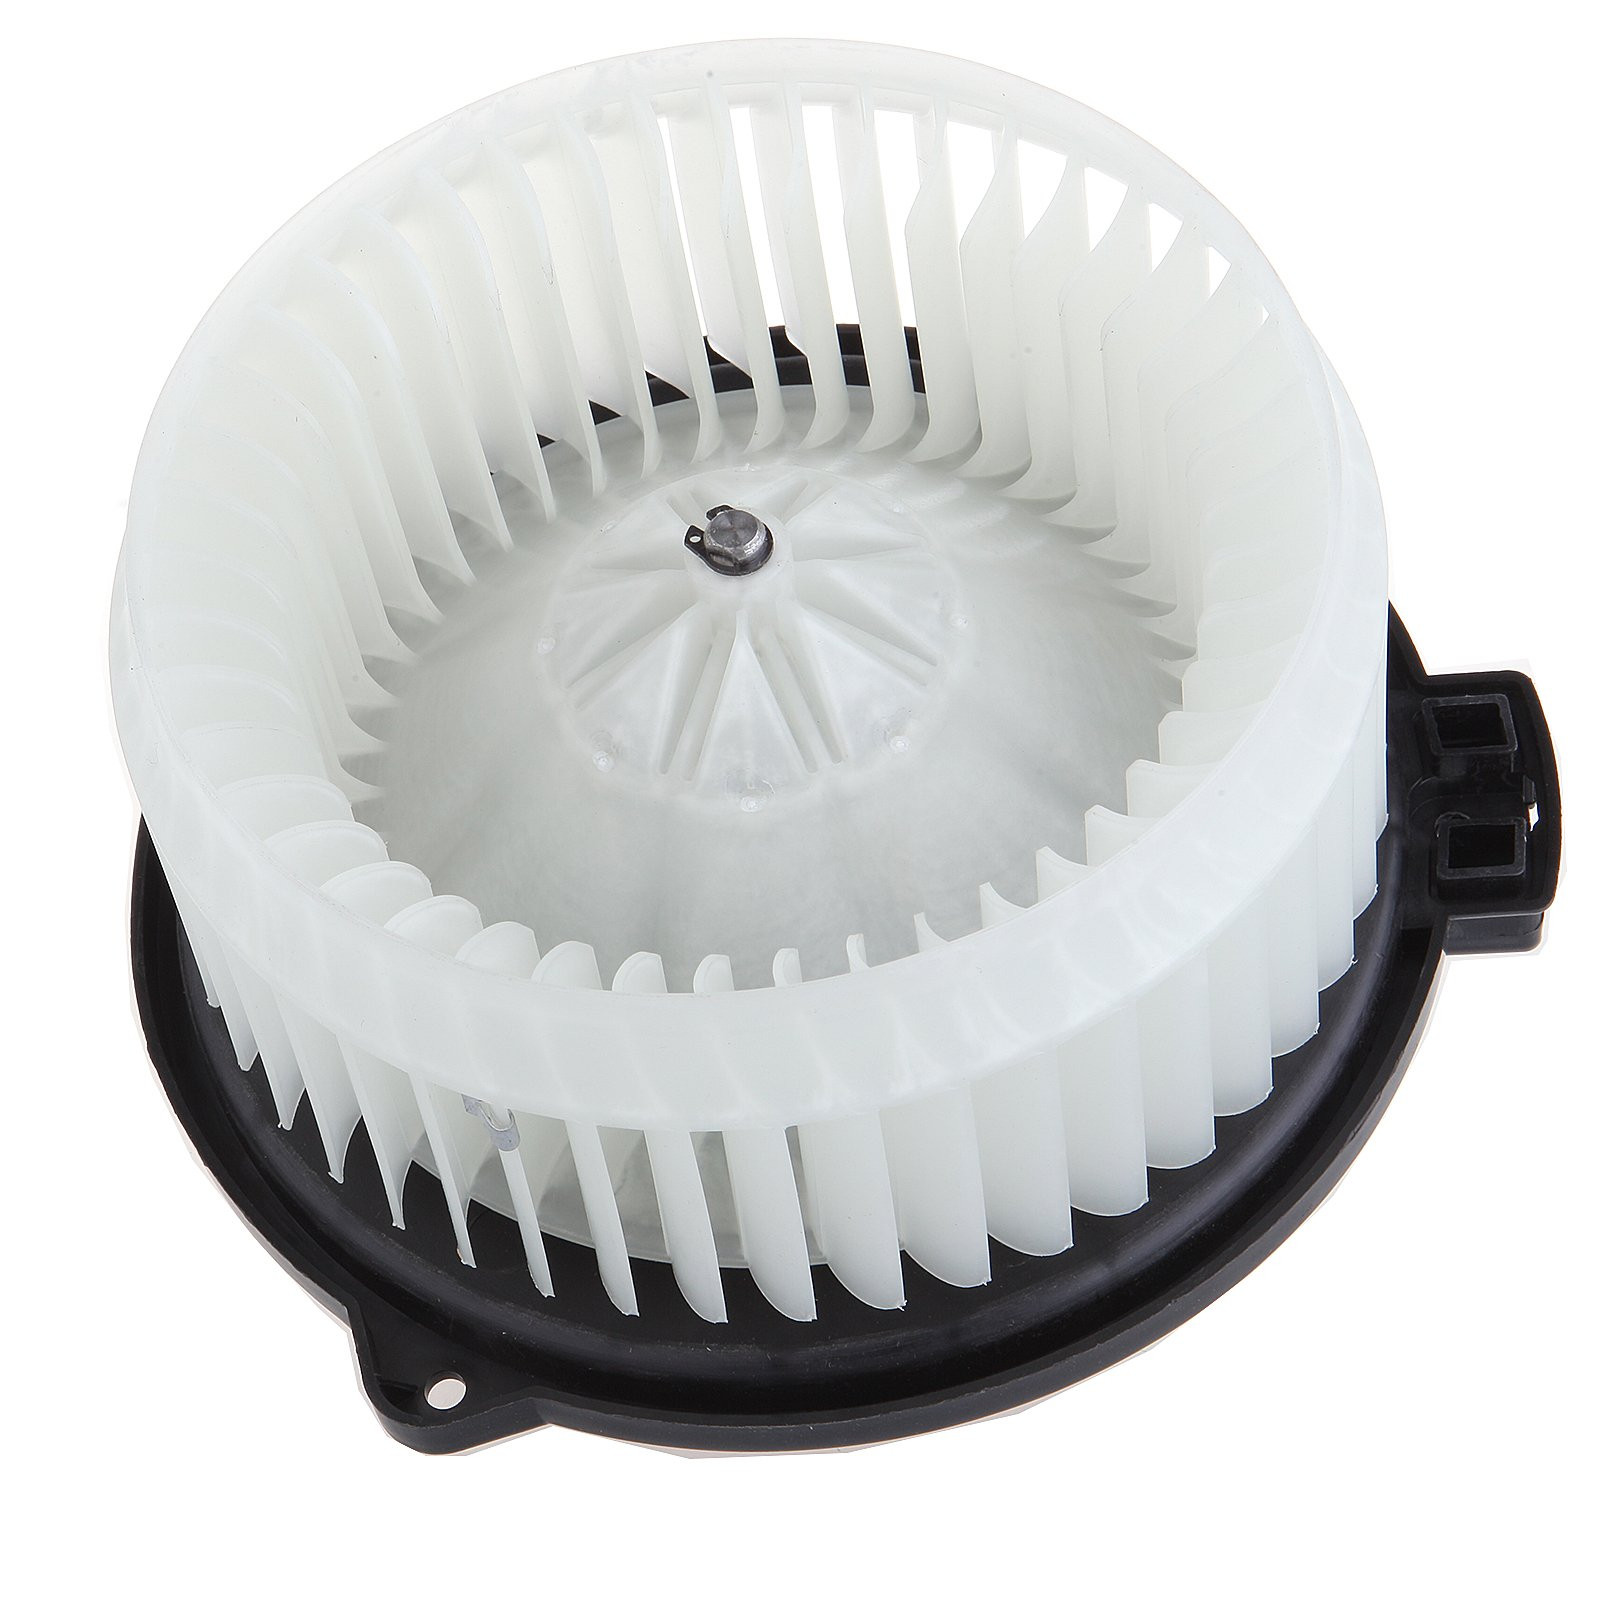 HVAC Plastic Heater Blower Motor ABS w/Fan Cage ECCPP for 2001-2005 Acura EL /2001-2005 Honda Civic /2002-2006 Honda CR-V /2003-2011 Honda Element